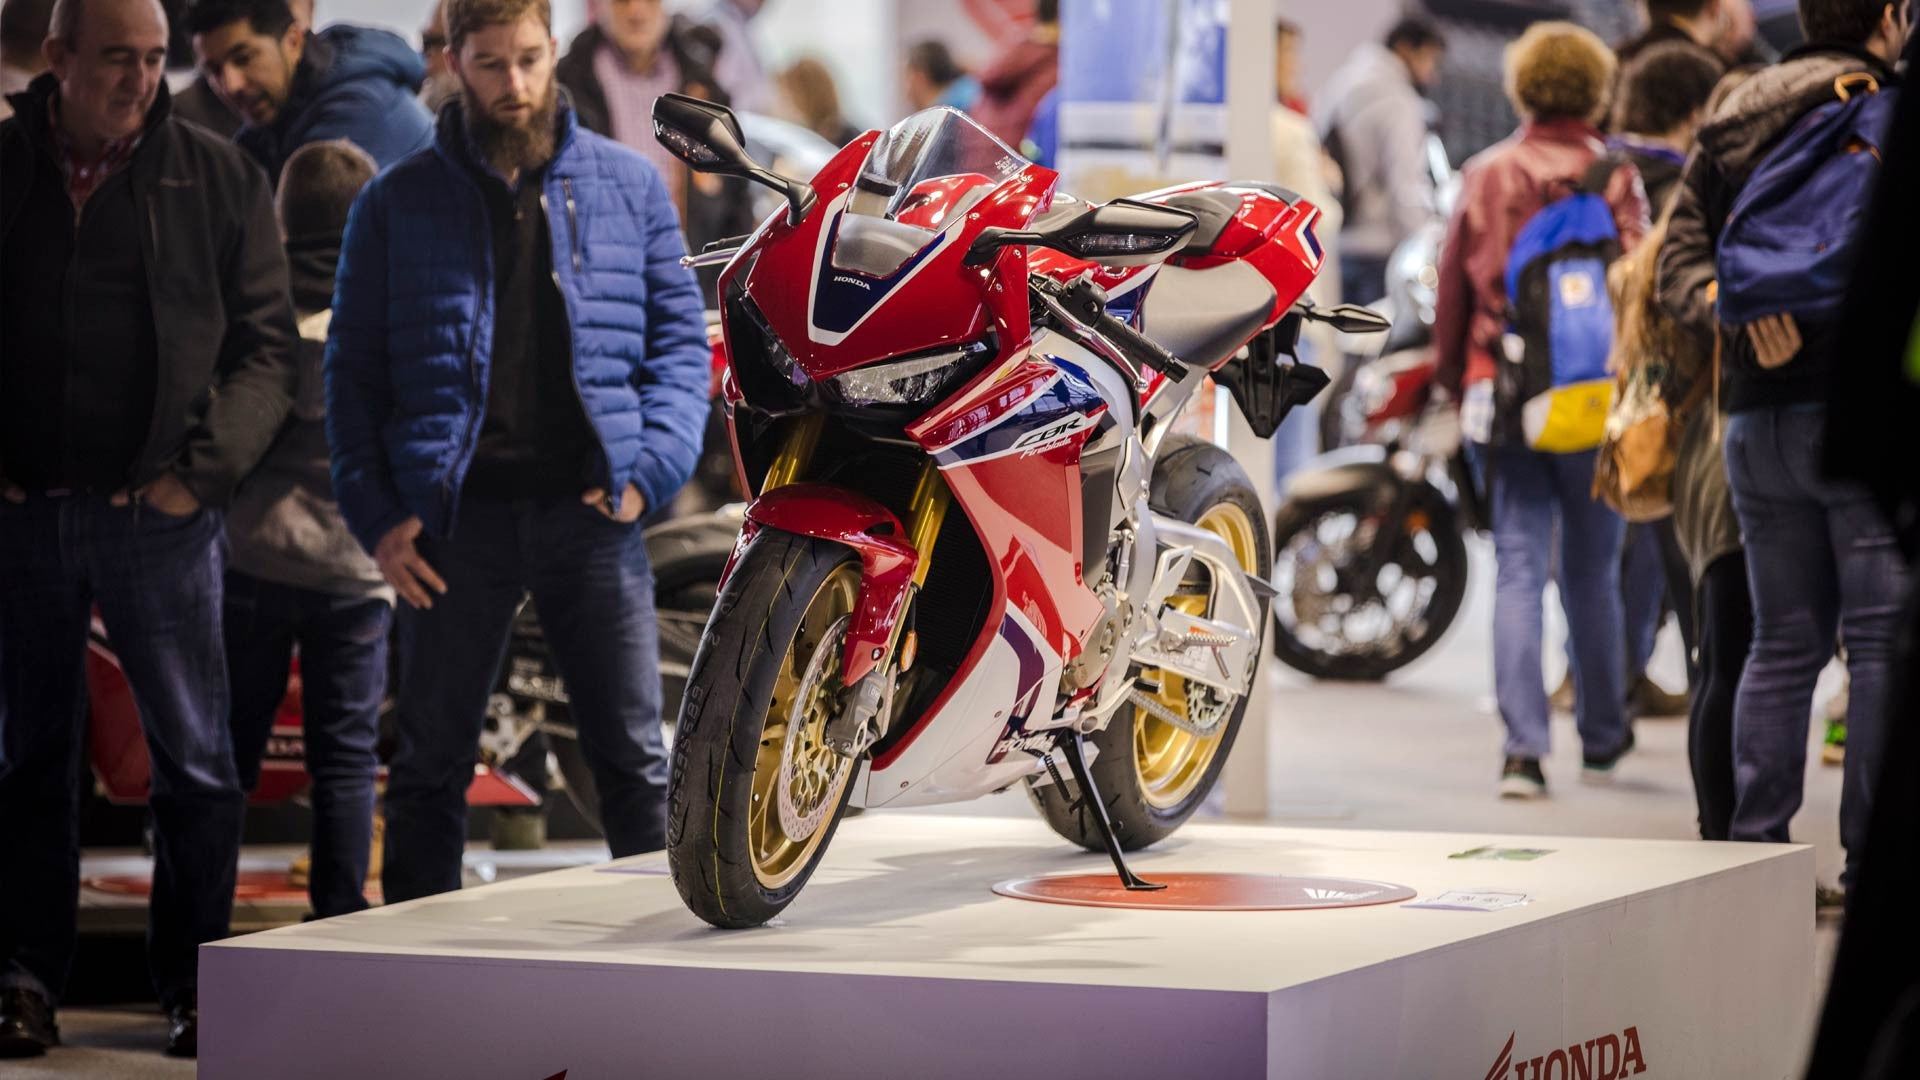 A visit to Moto Madrid - The largest motorcycle show in Spain